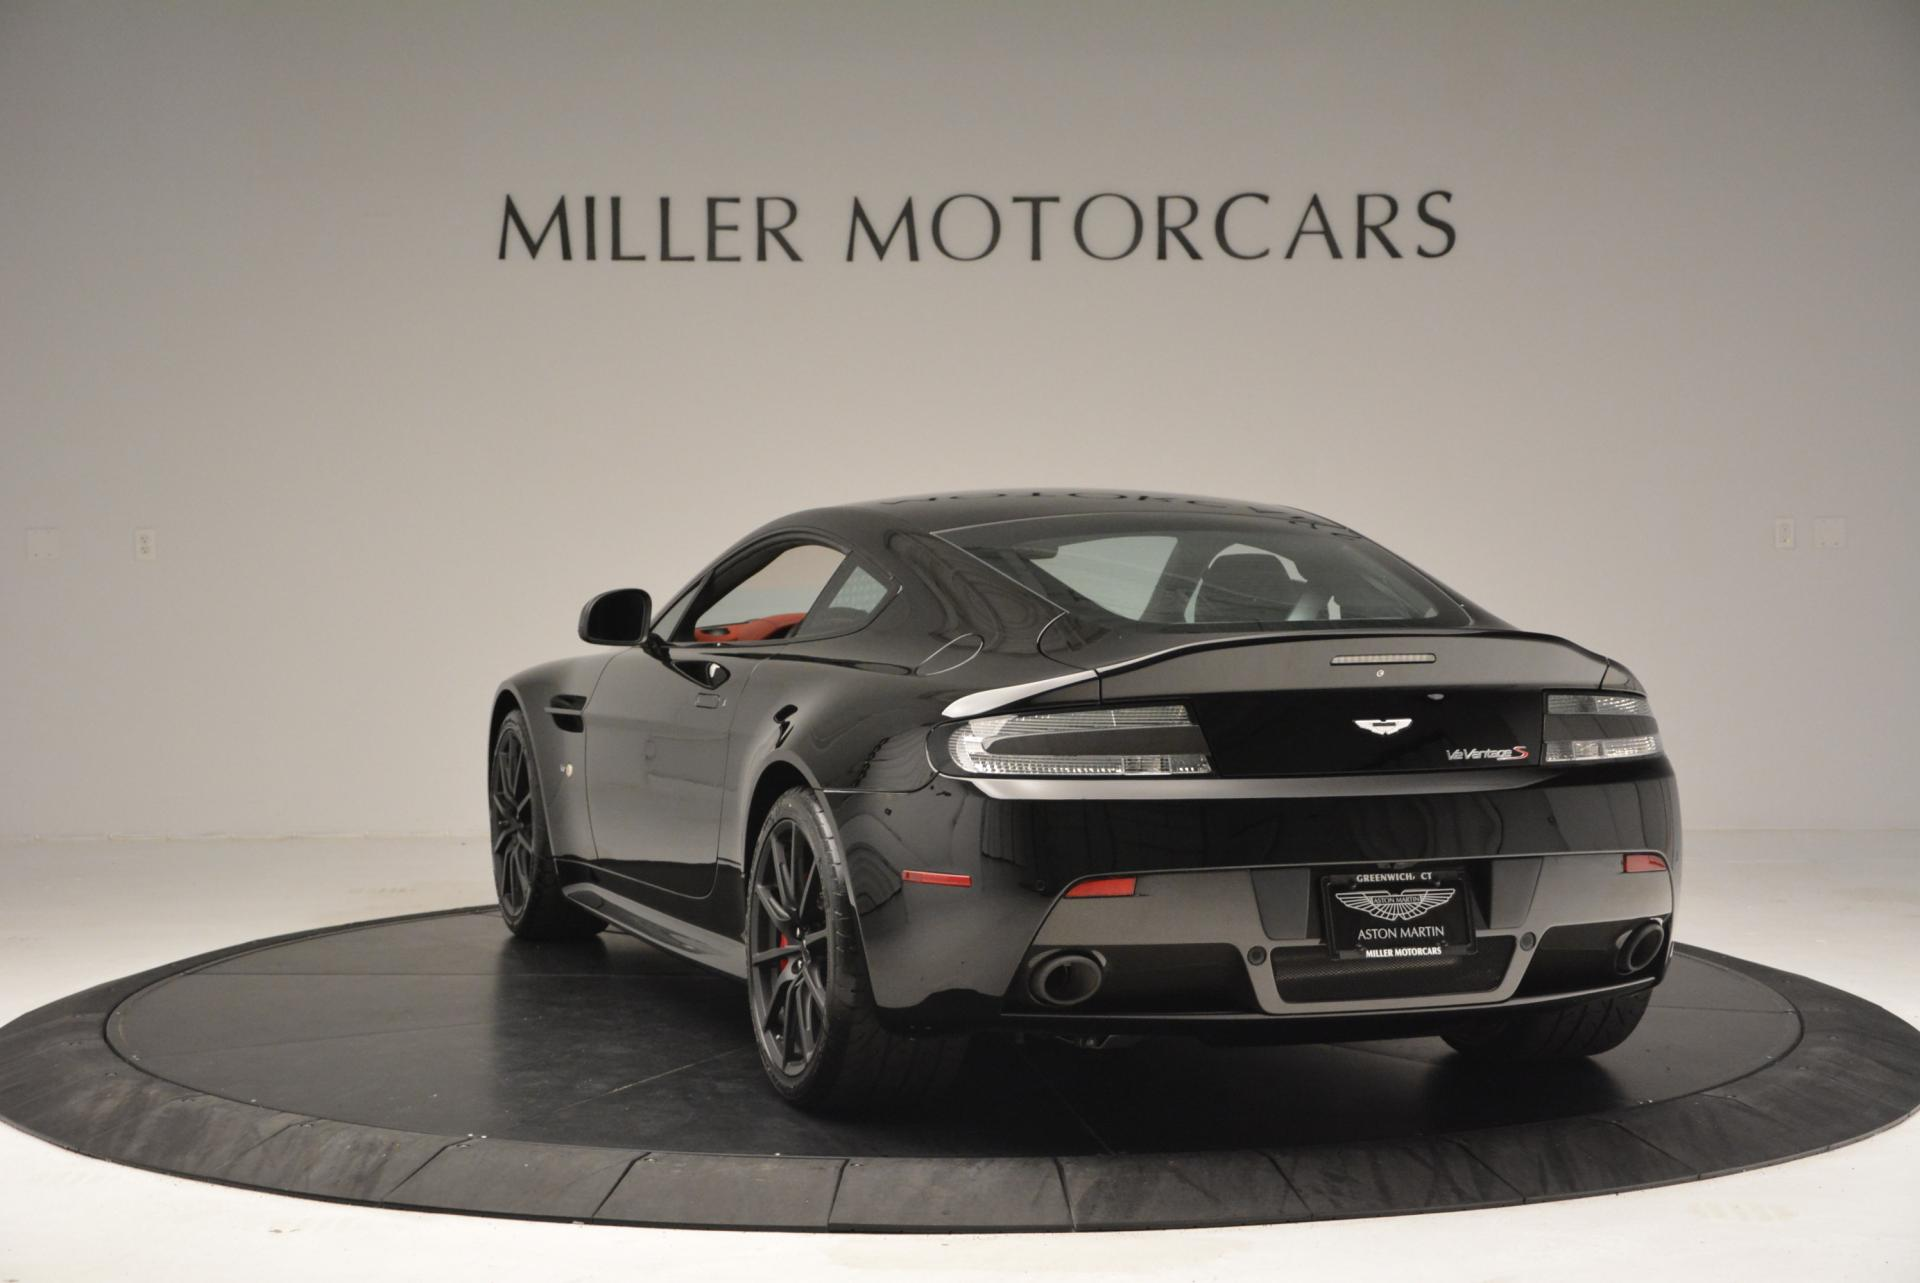 New 2015 Aston Martin V12 Vantage S  For Sale In Westport, CT 103_p5